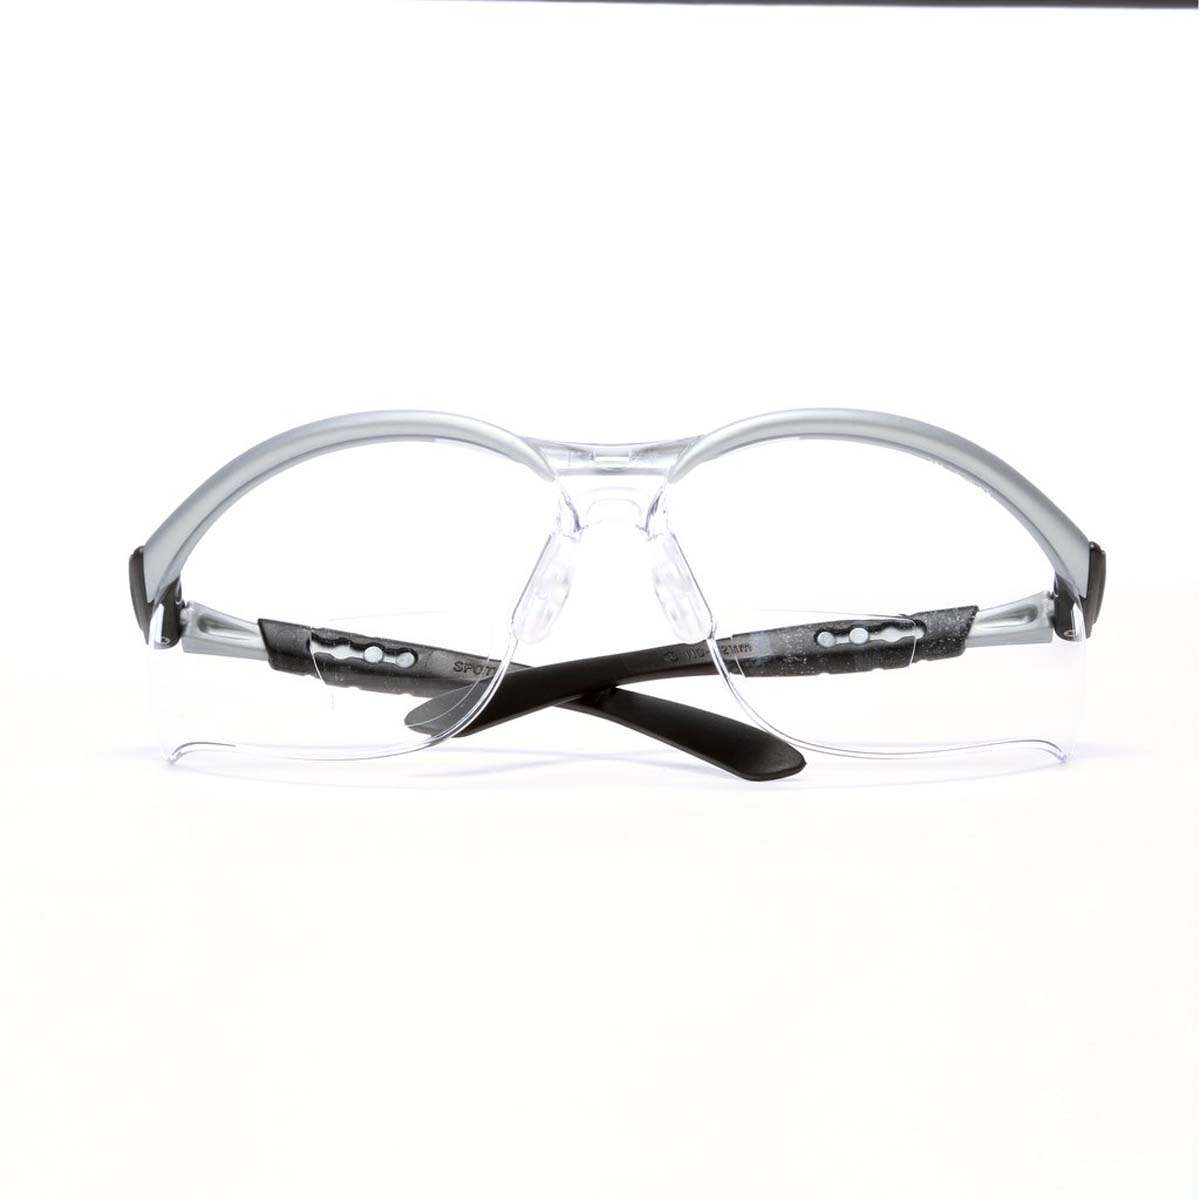 "3Mâ""¢ BXâ""¢ Reader Protective Eyewear 11374-00000-20 Clear Lens, Silver Frame, +1.5 Diopter"